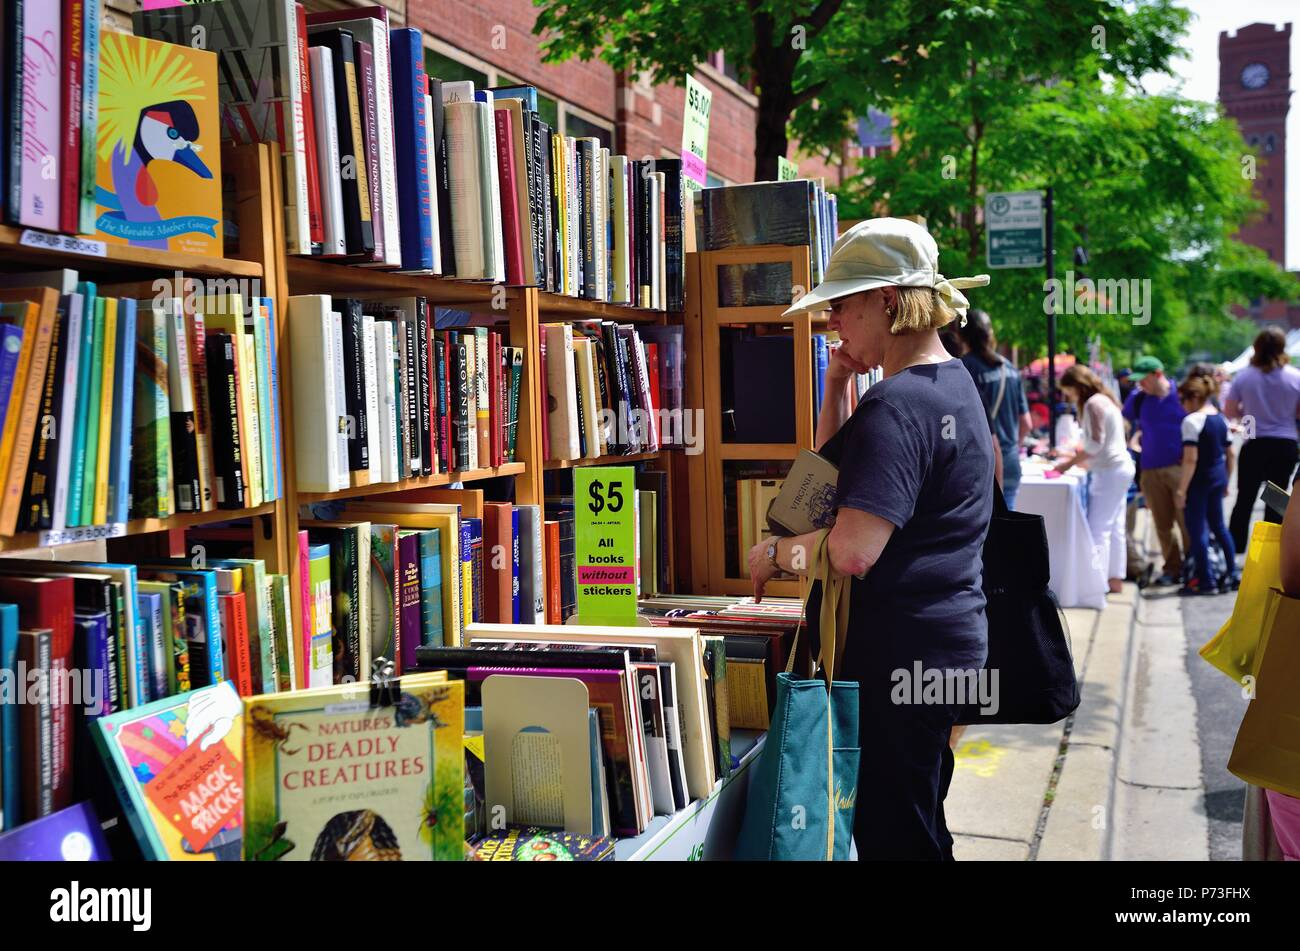 Chicago, Illinois, USA. Woman ponders a potential purchase at the annual Printers Row Lit Fest (formerly Printers Row Book Fair). The large street fes - Stock Image